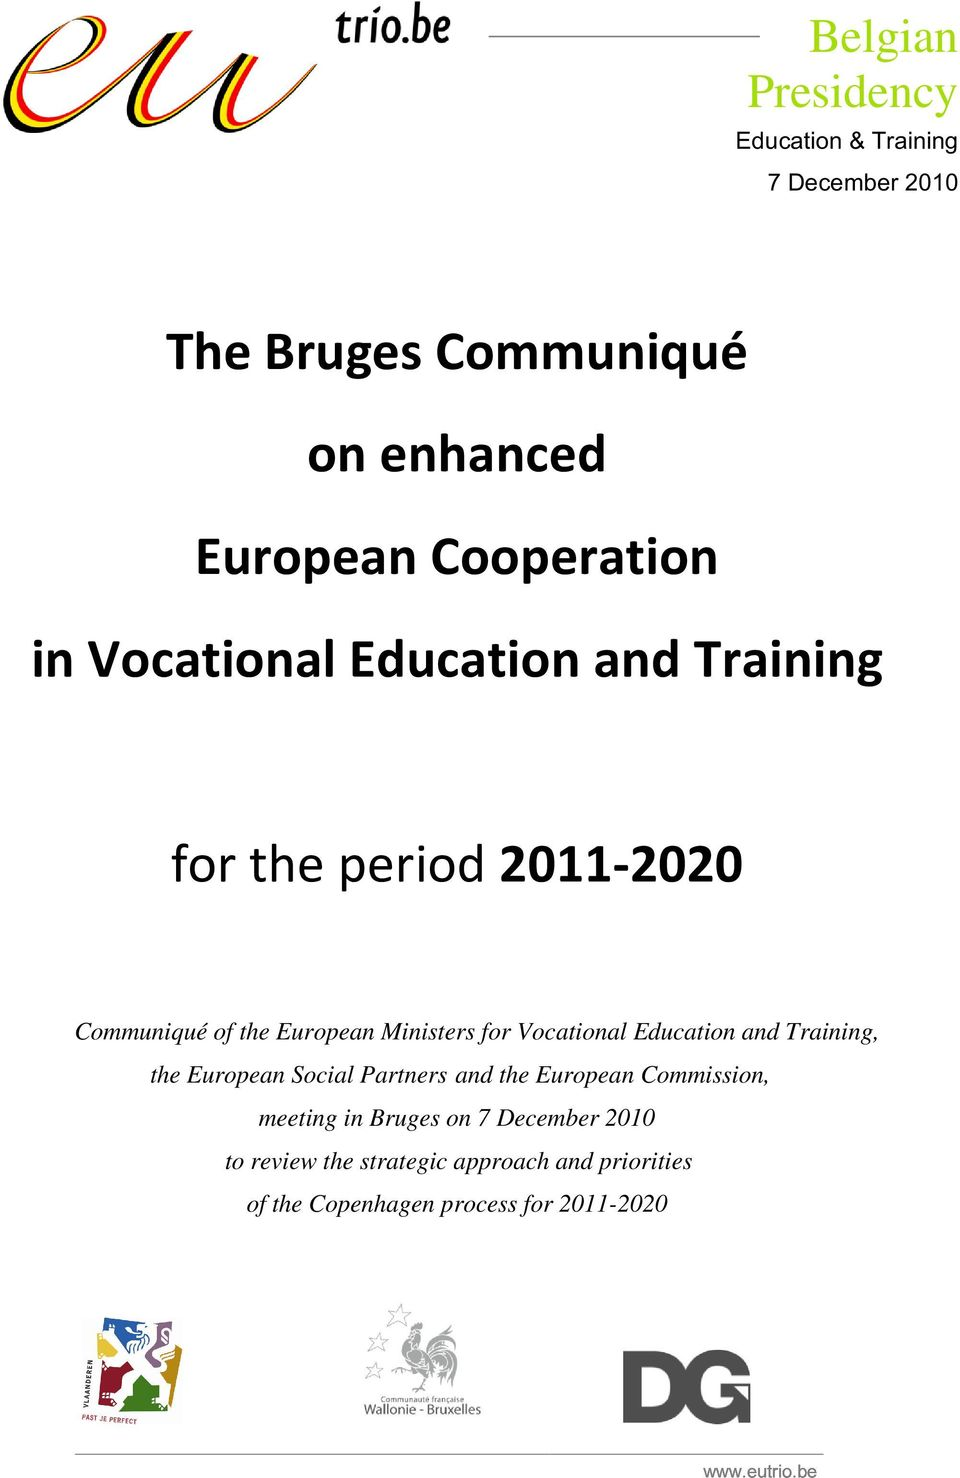 Vocational Education and Training, the European Social Partners and the European Commission, meeting in Bruges